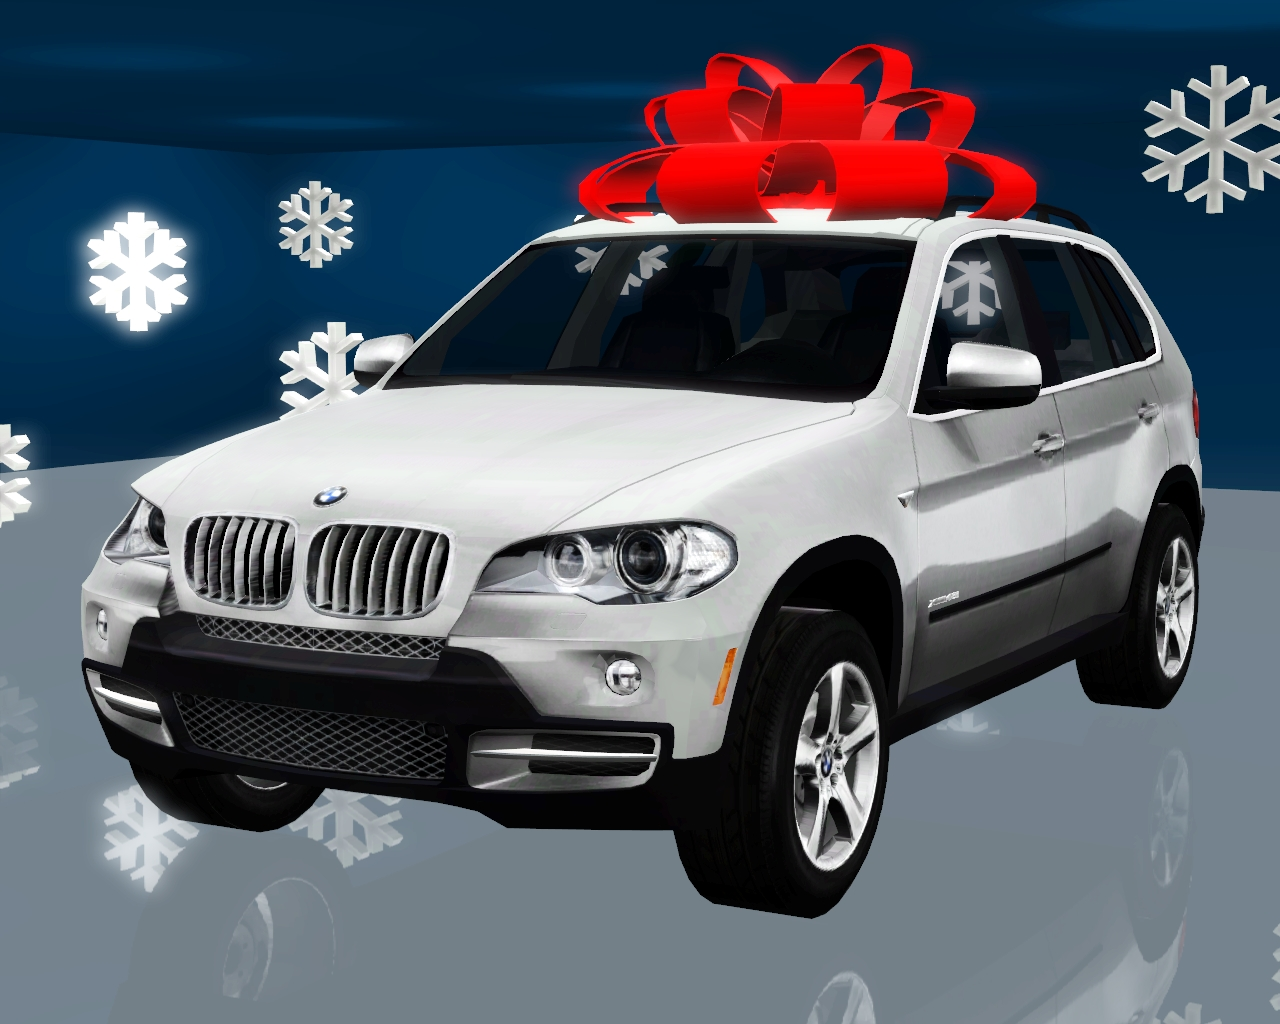 2009 BMW X5 by Fresh-Prince